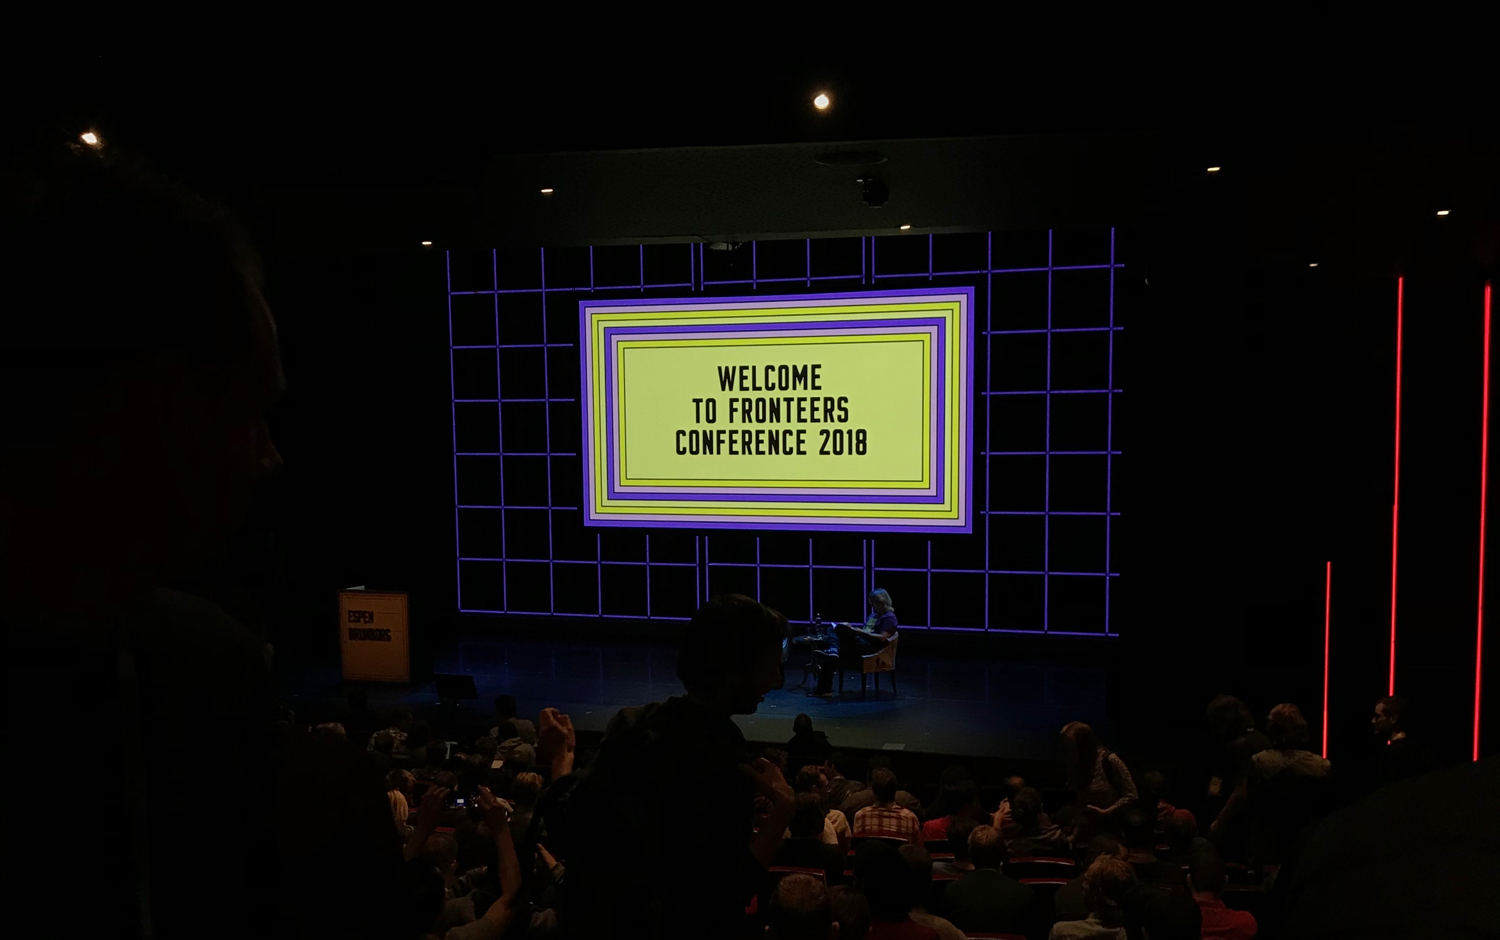 Welcoming slide of the Fronteers conference 2018